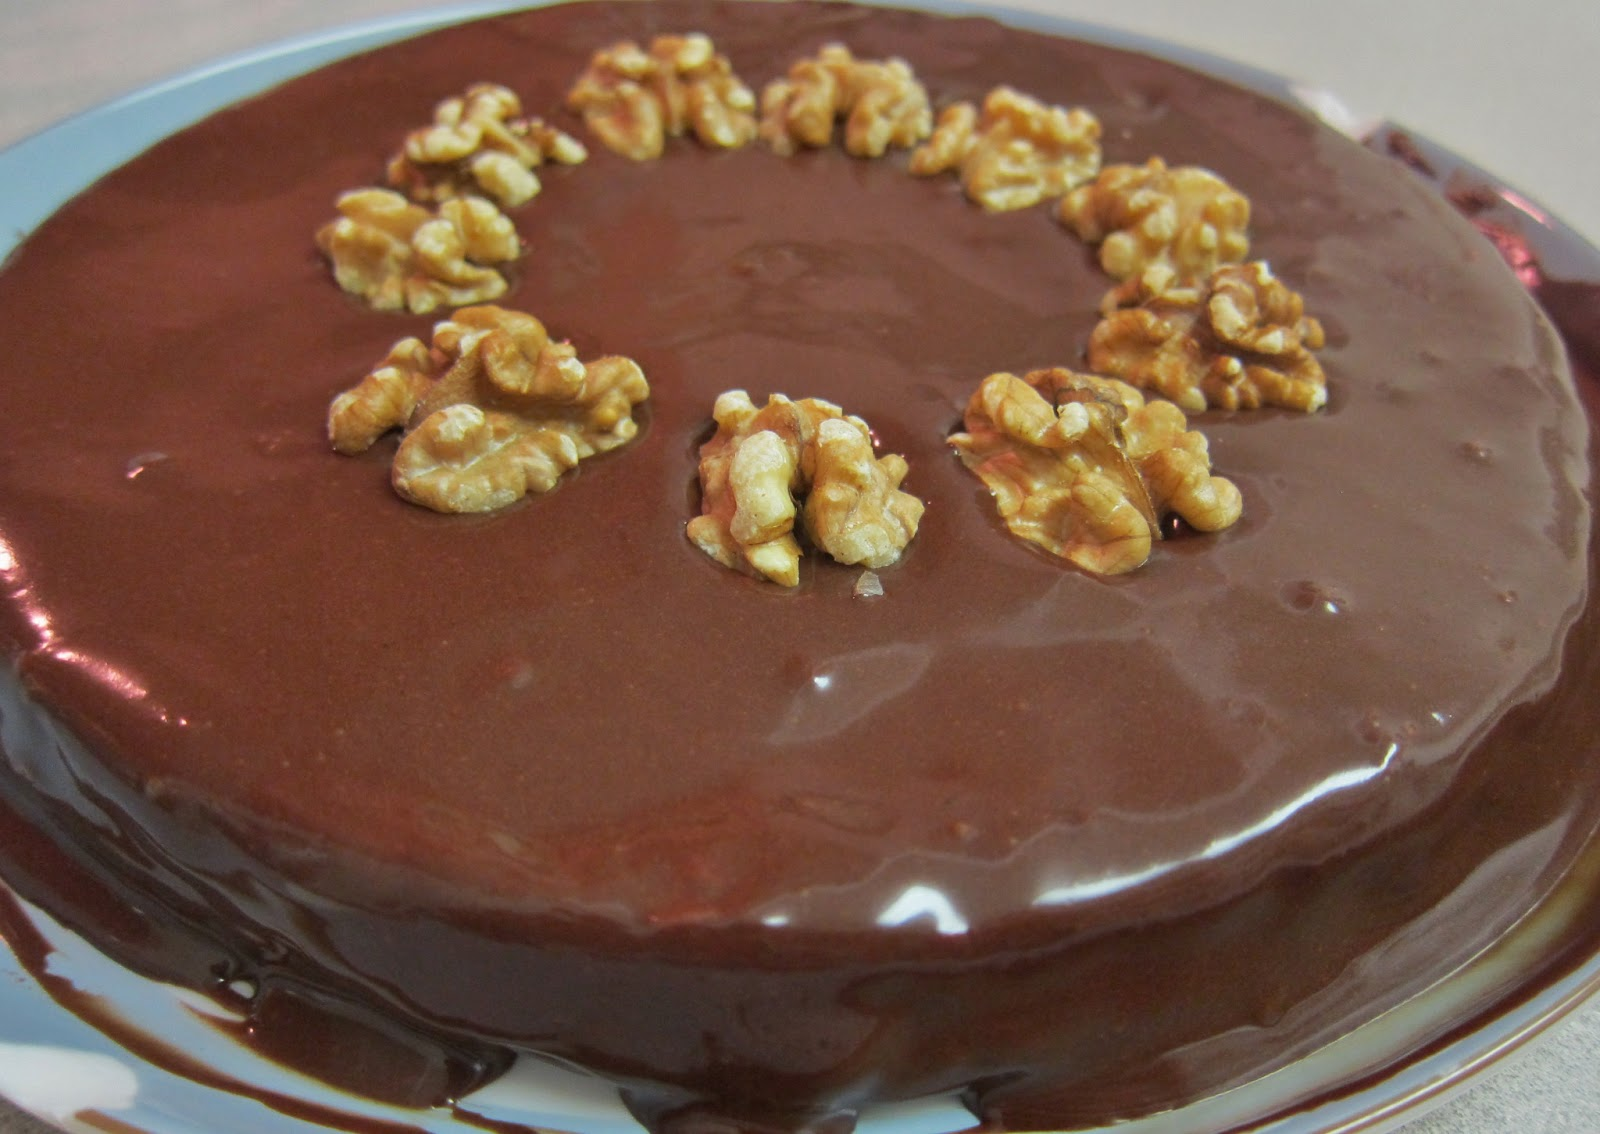 Chocolate Walnut Cake Images : The Vegan Chronicle: Chocolate-Walnut Cake